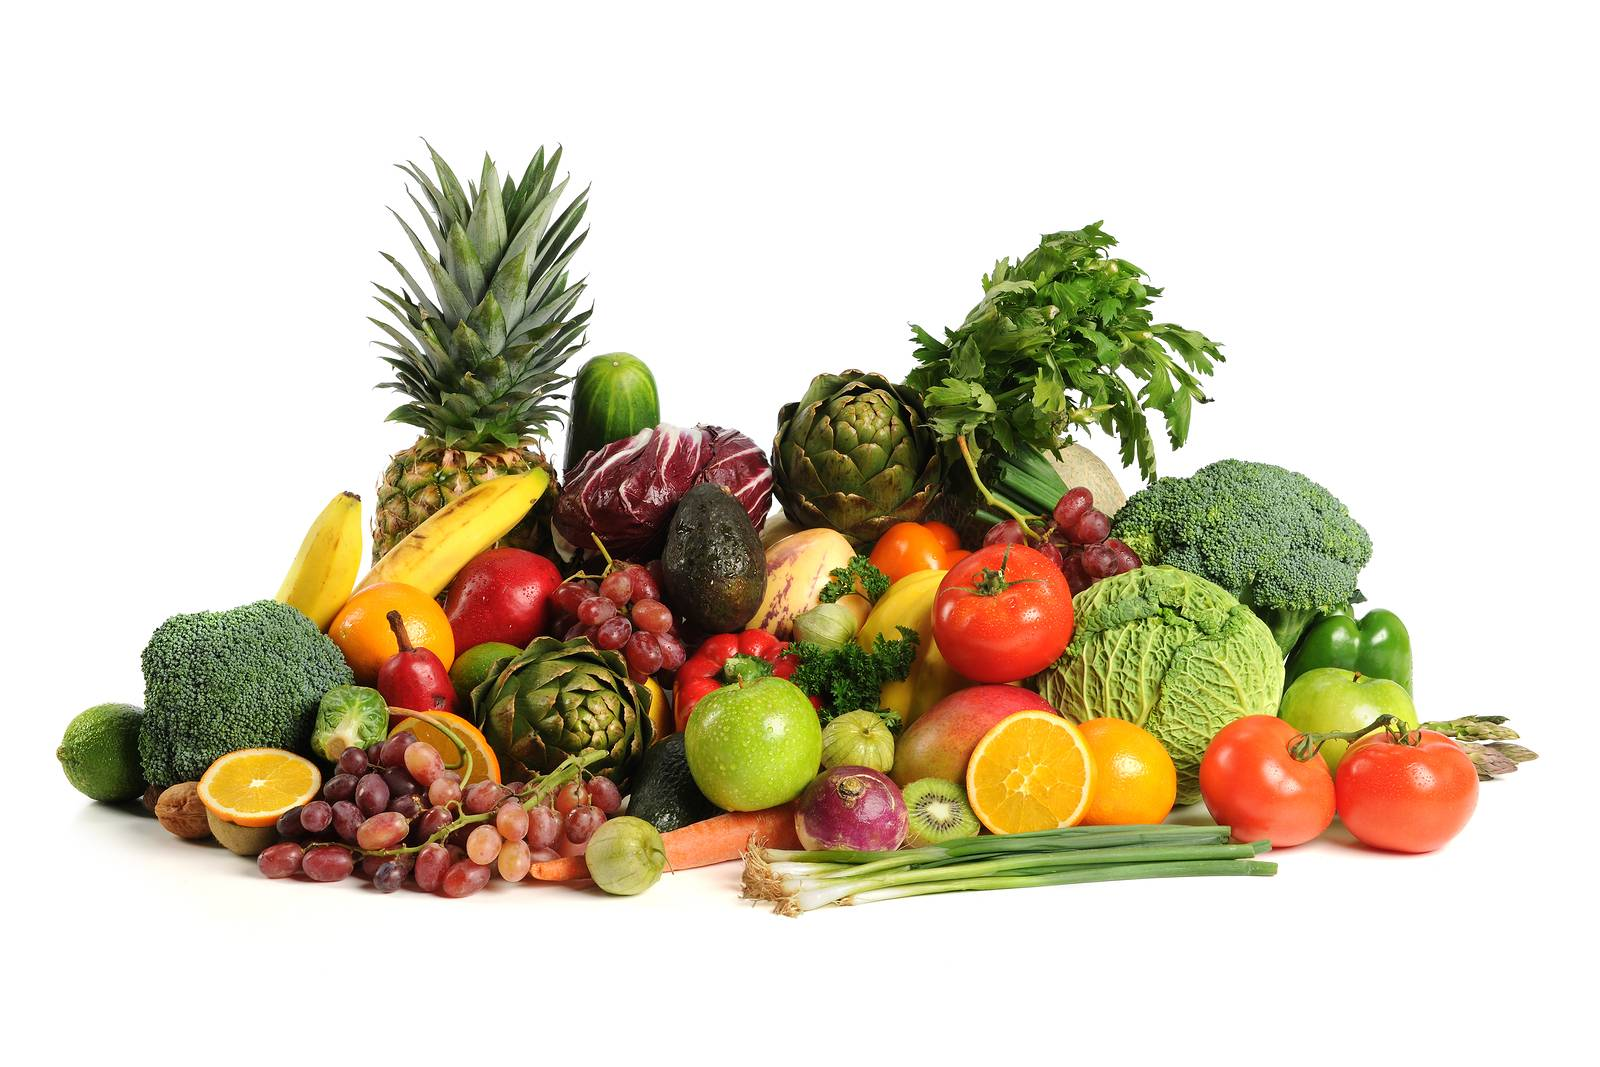 fruits and vegetables   FruitsVegetables Wallpaper 1600x1067